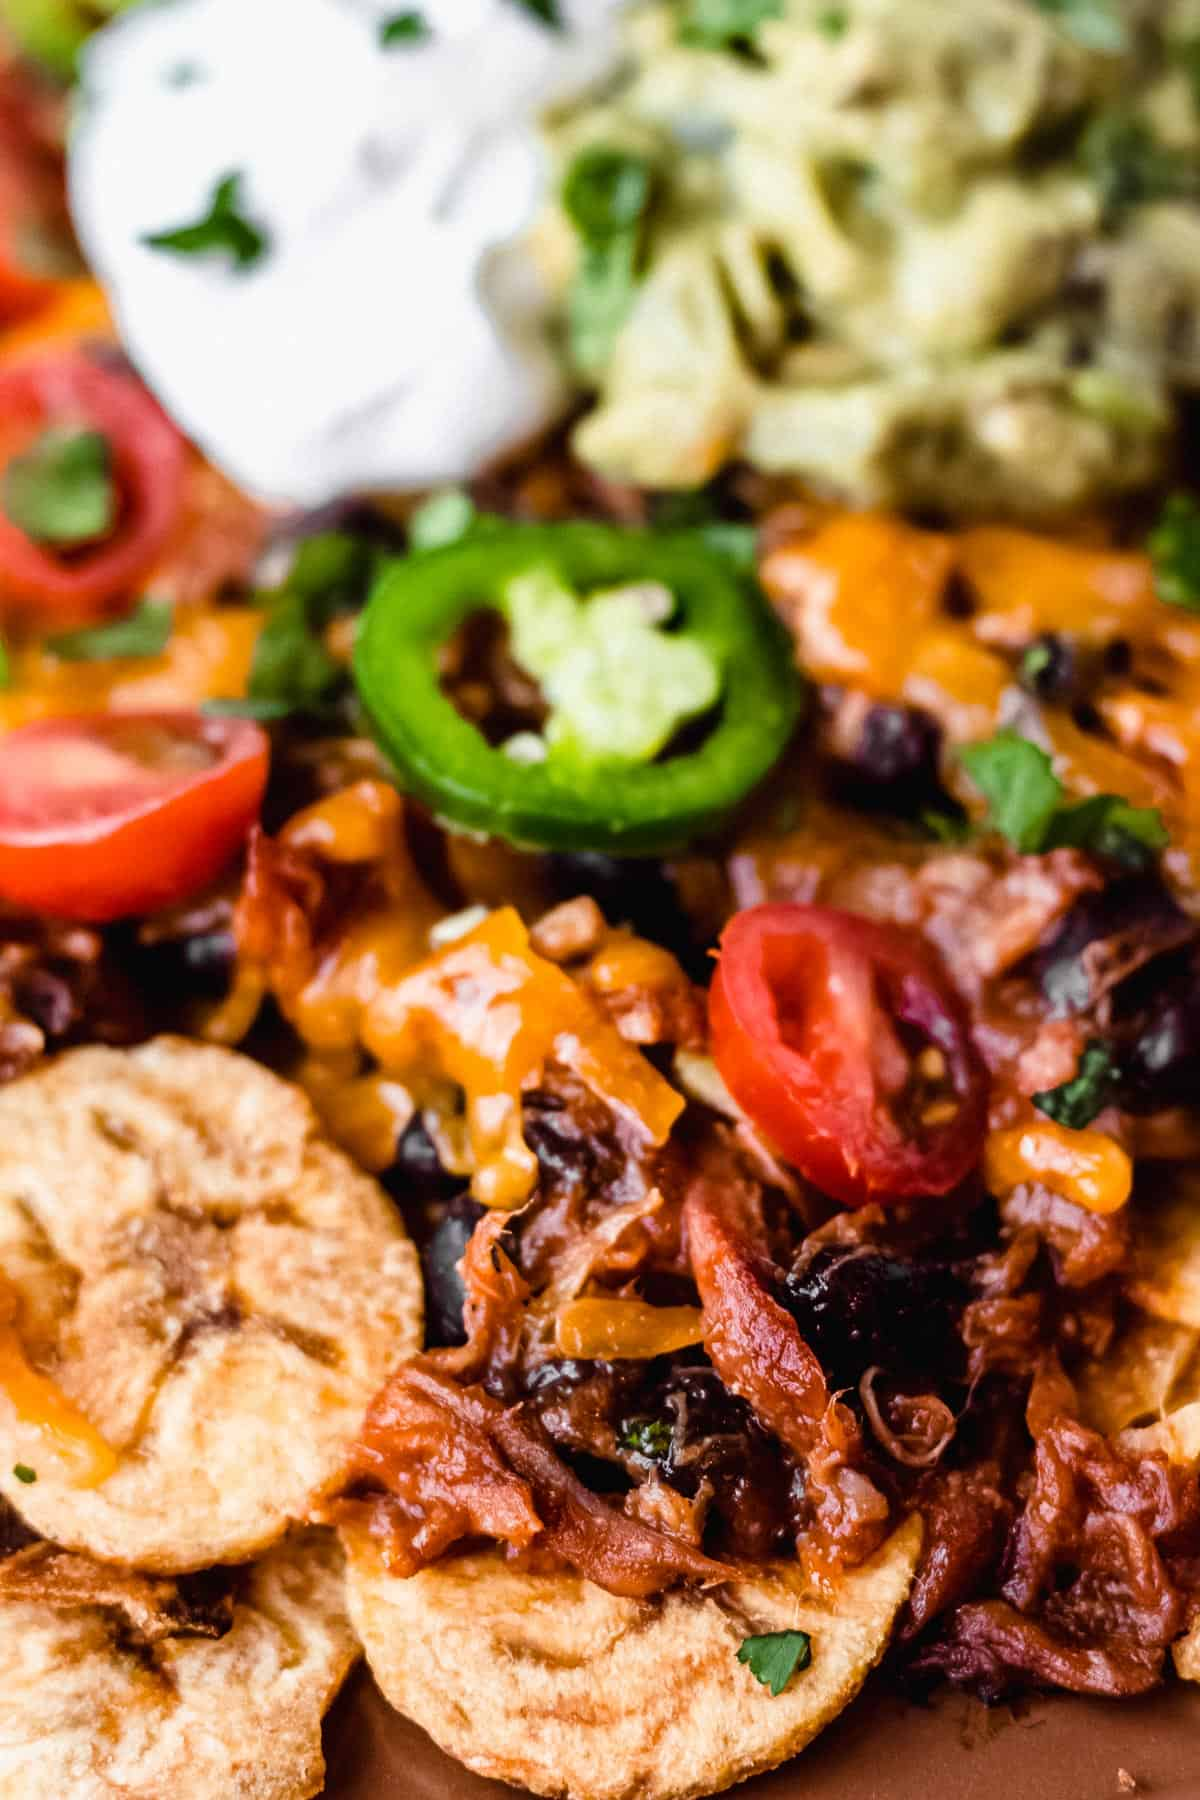 Close up of pulled pork nachos on plantain chips with sour cream and guacamole blurred in the background